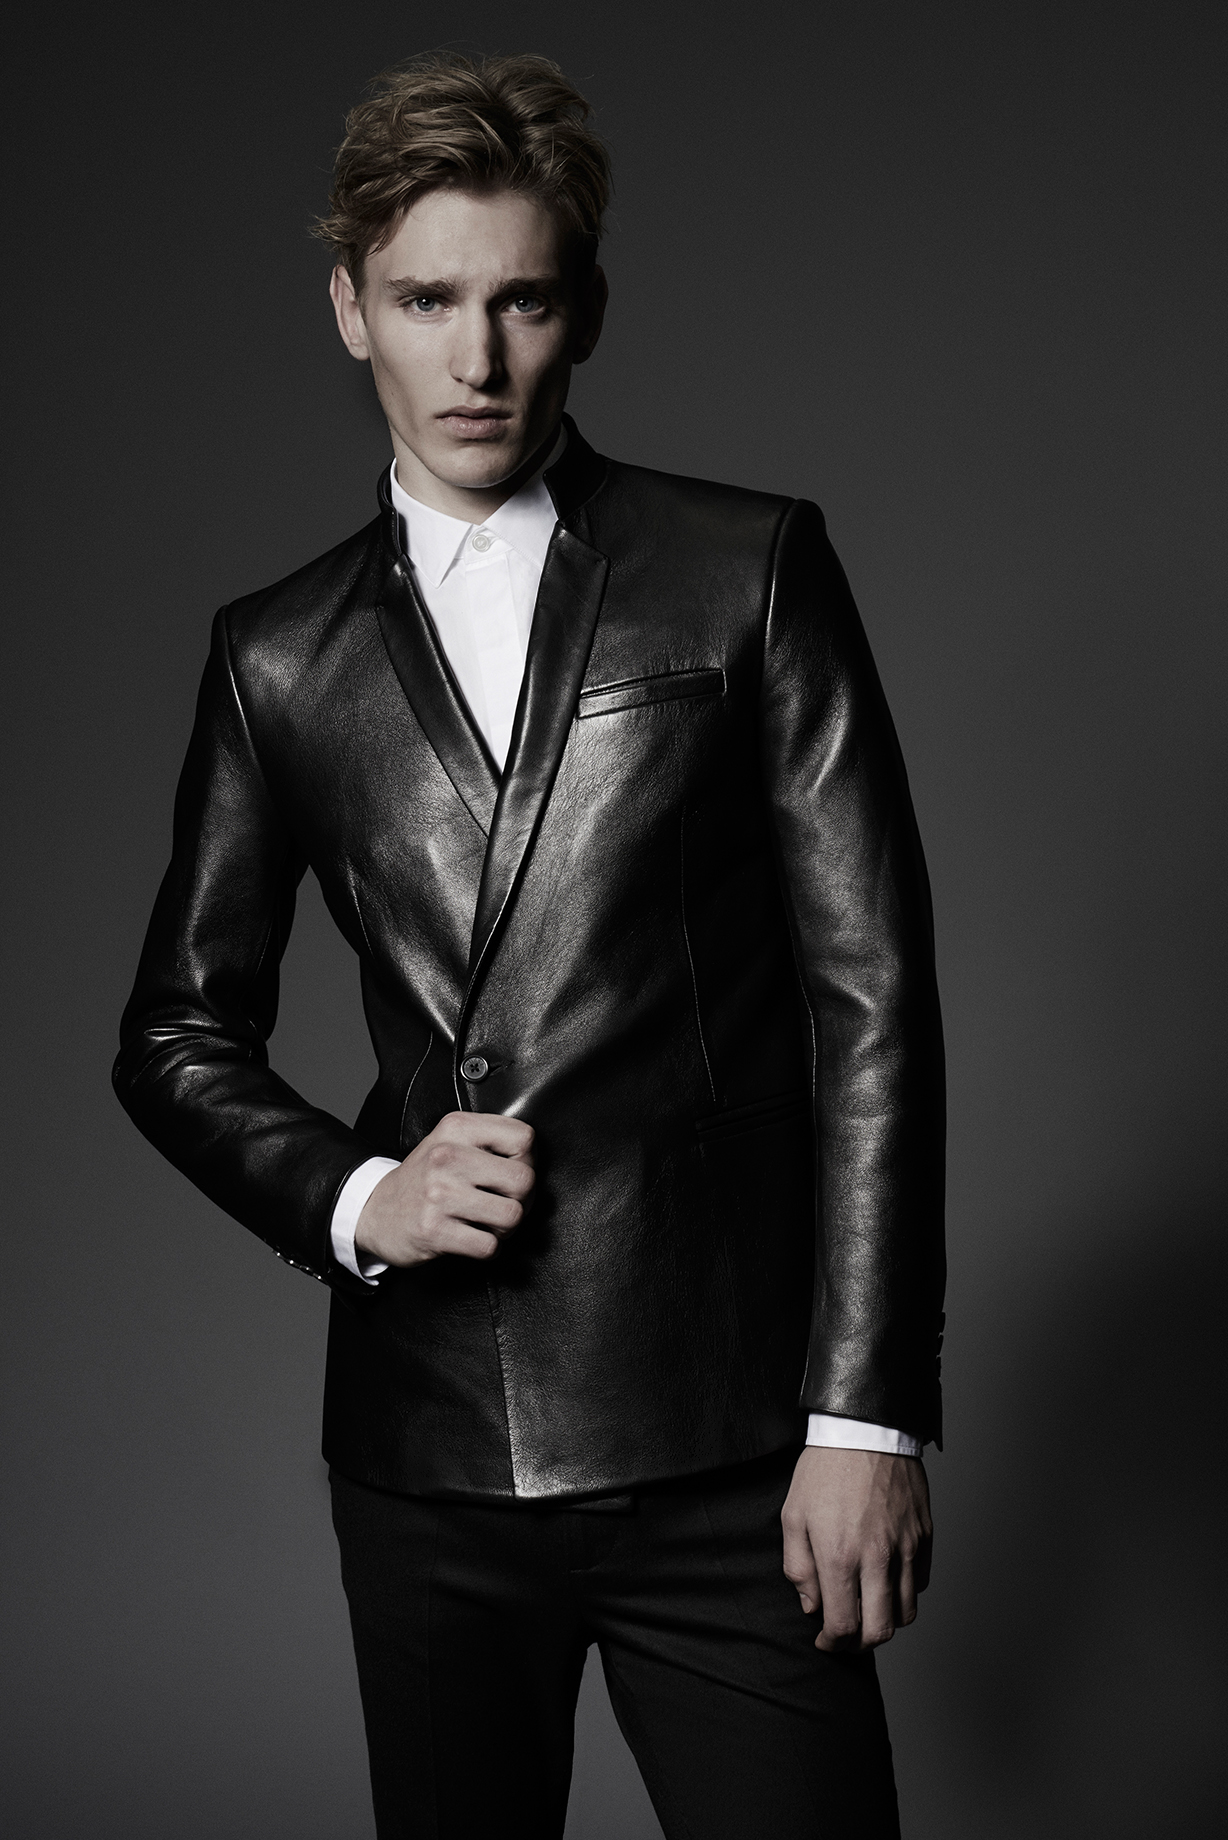 CONTEMPORARY JACKET DOUBLE BREASTED Colours: Black 100% Goatskin Leather Made In England  CLASSIC SHIRT Colours: White 100% Cotton Made In Italy